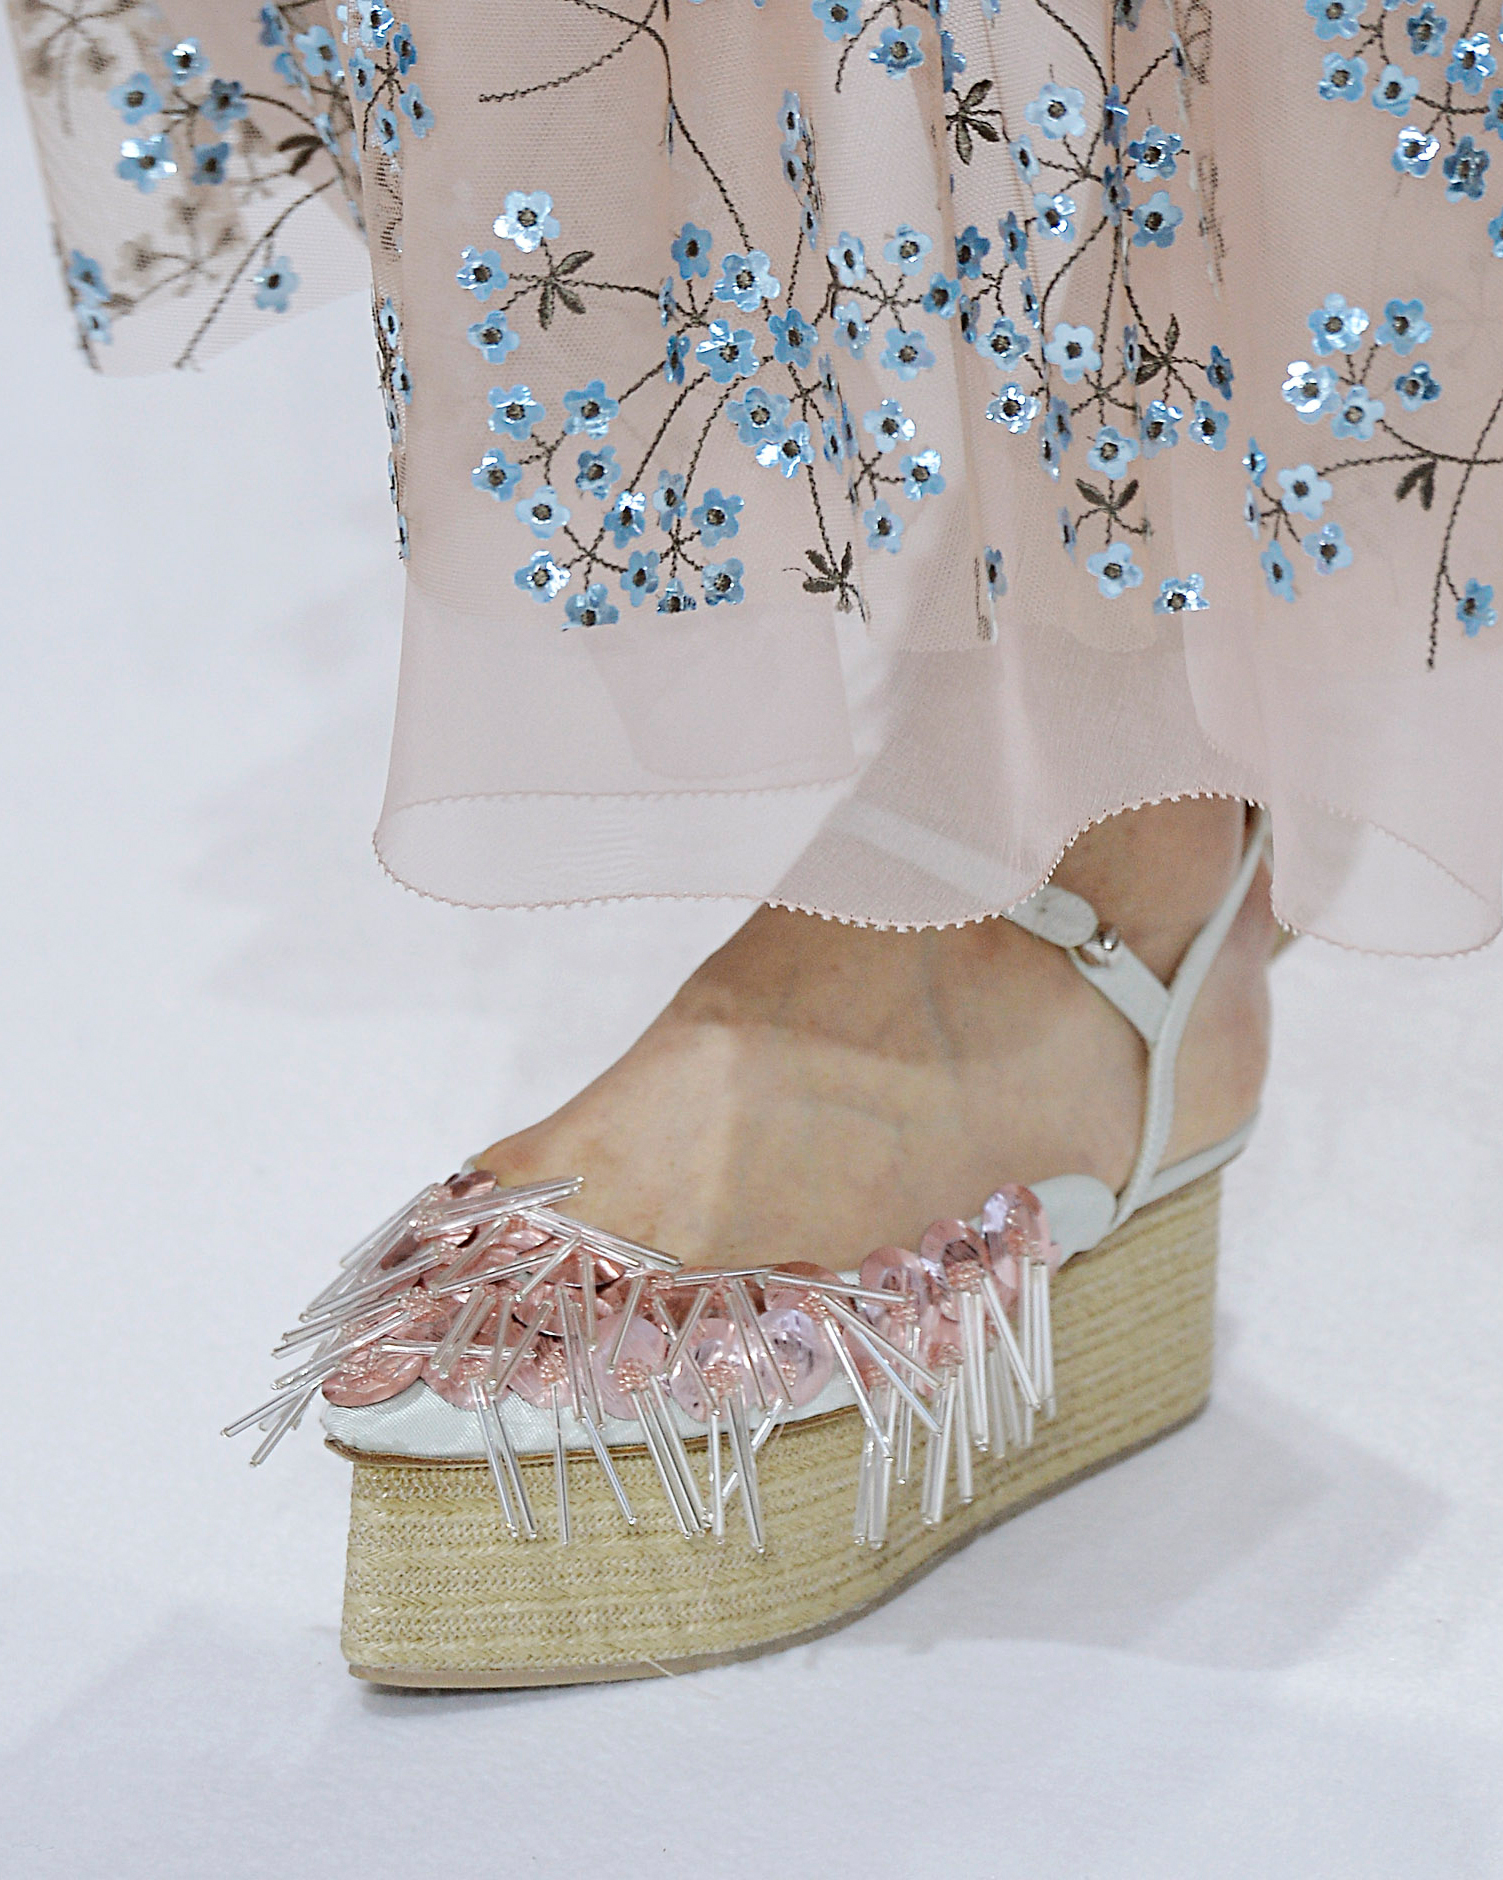 sp16-nyfw-bridal-accessories-delpozo-shoes-0915.jpg